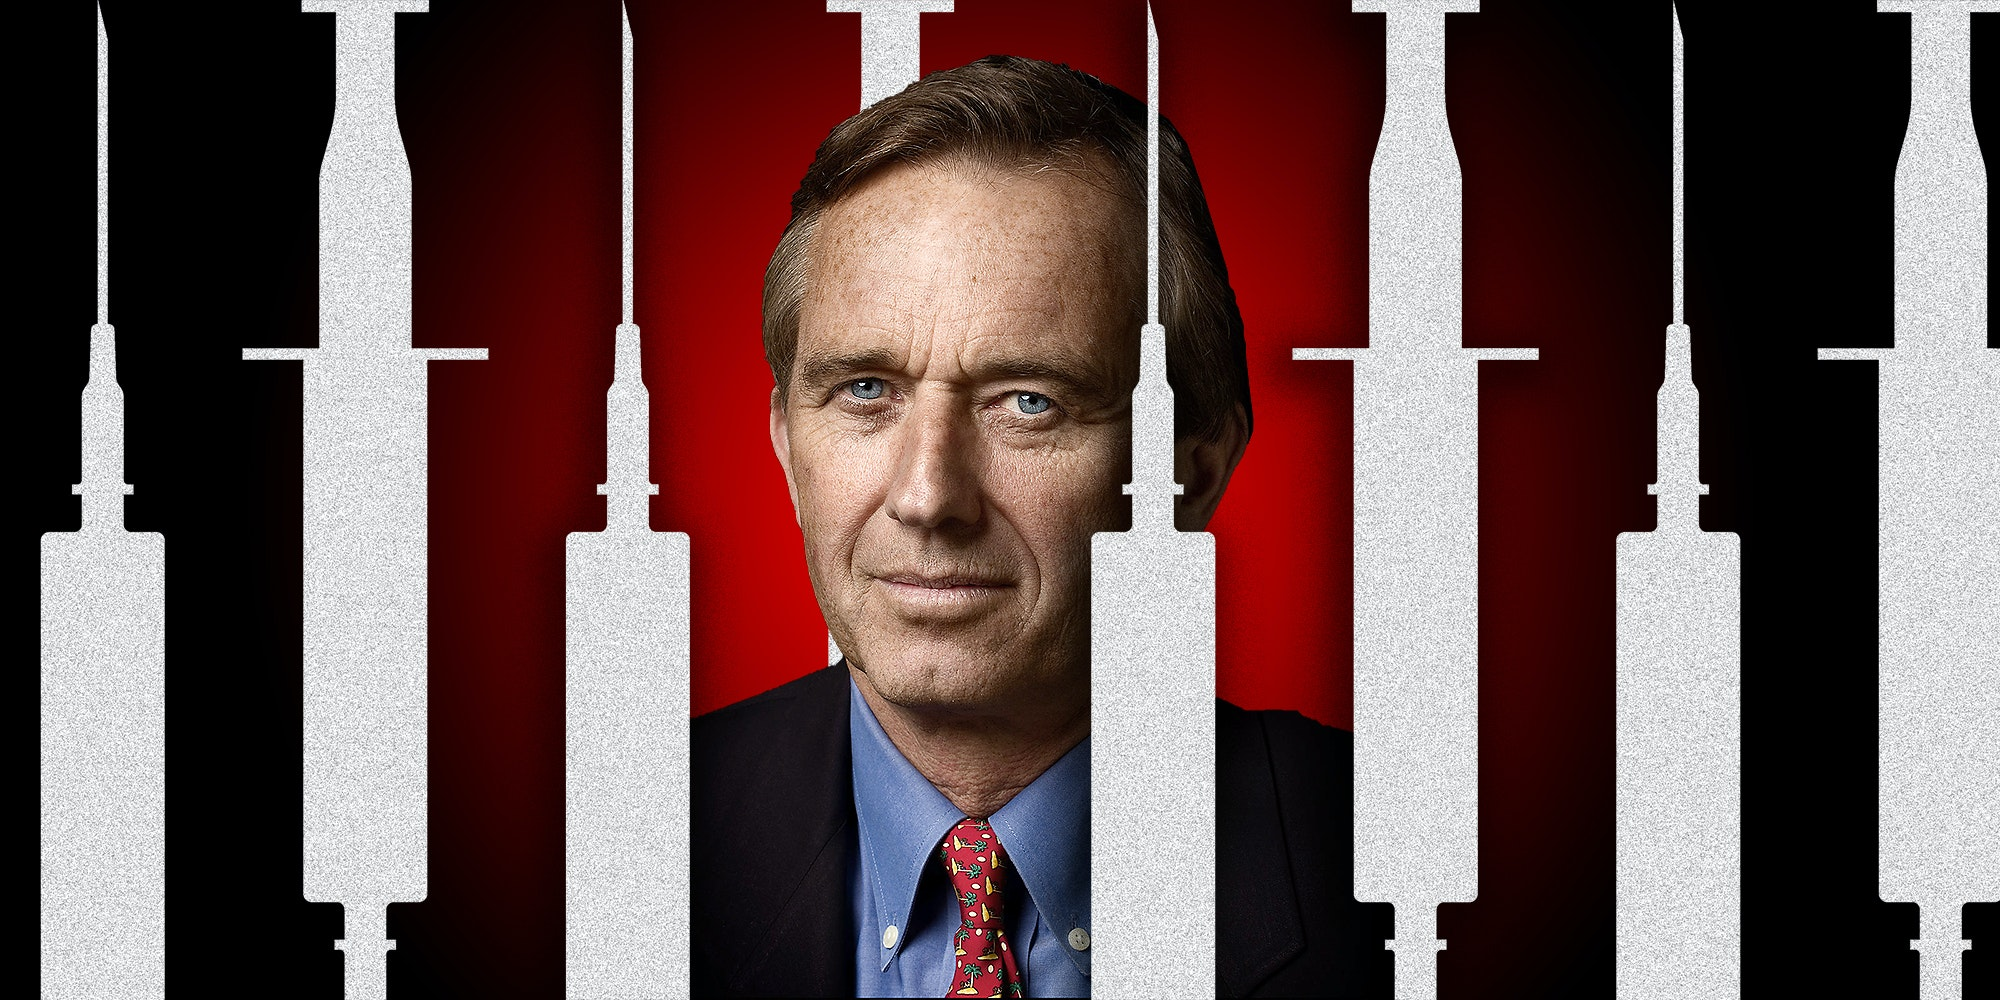 Illustration of Robert Kennedy Jr. with syringes.